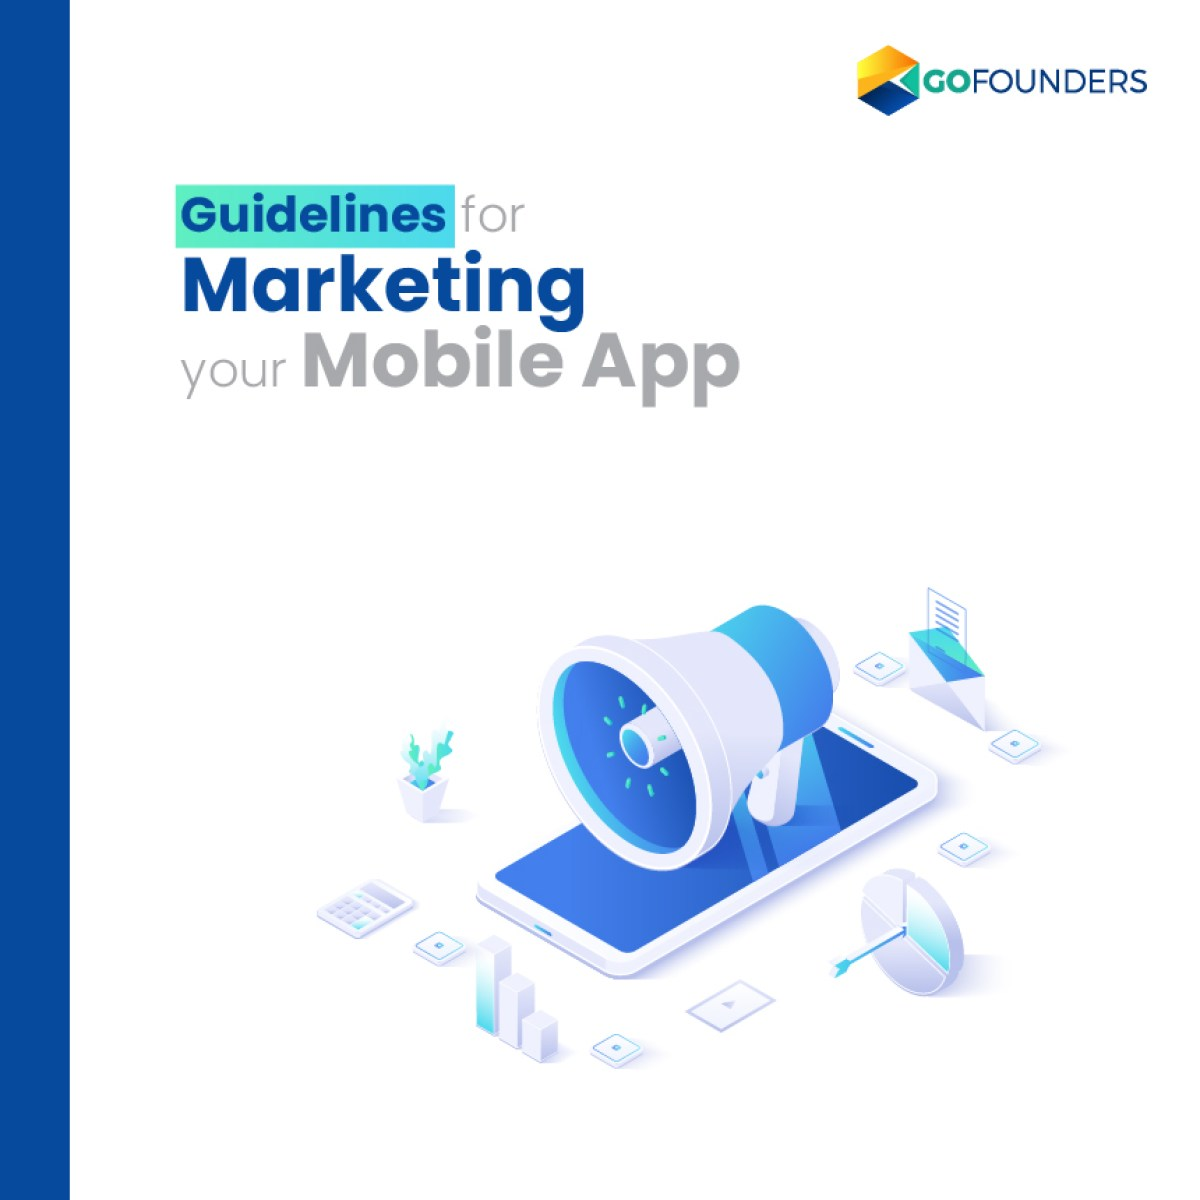 Get Started With Marketing Your Mobile App Using These Guidelines